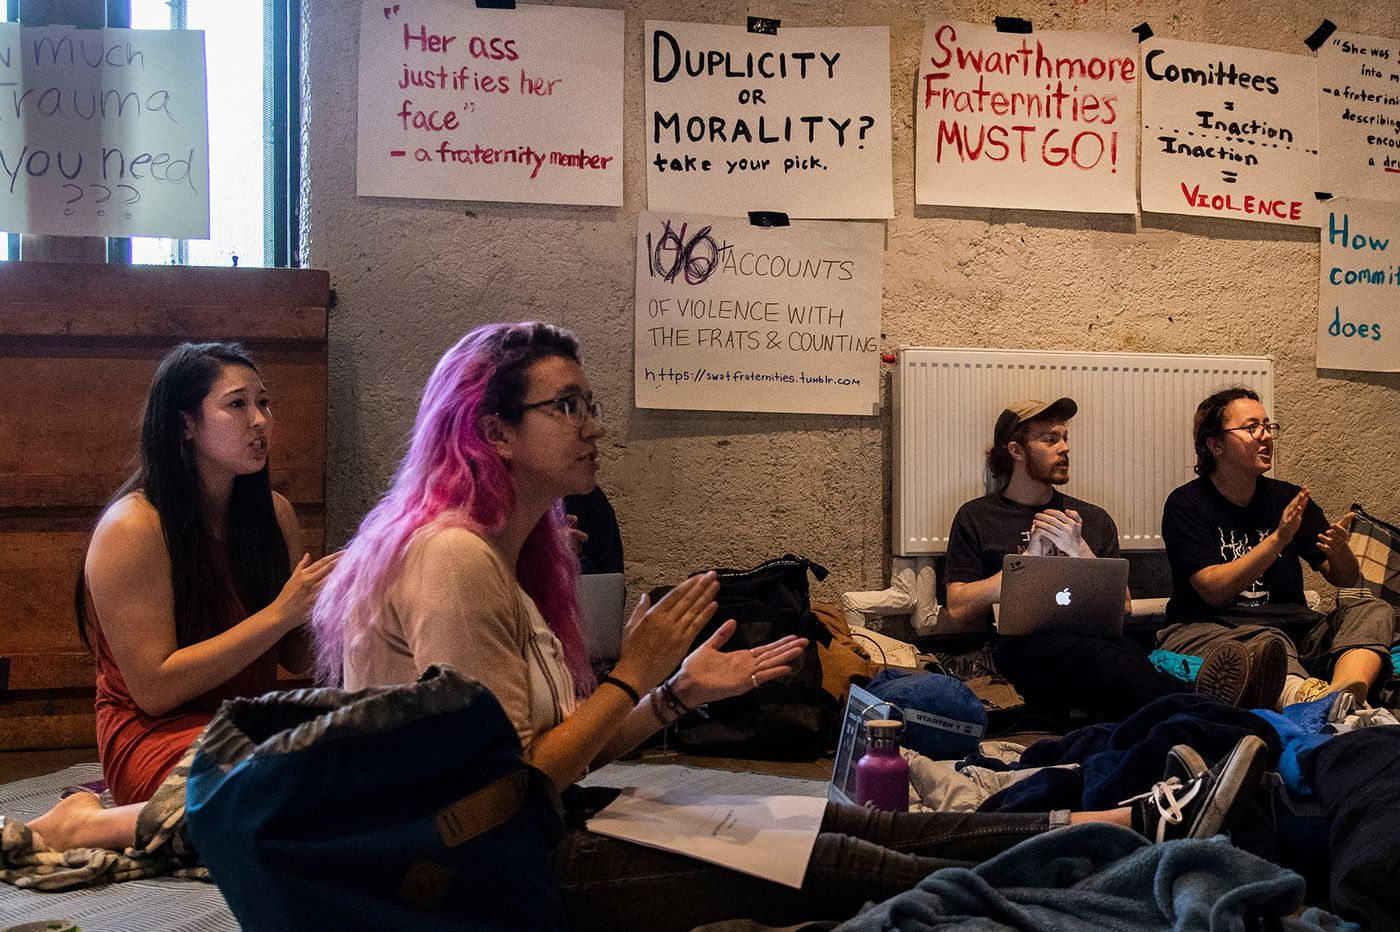 Inside Swarthmore's decision to close frats: The behavior of students who demanded it was an issue, too